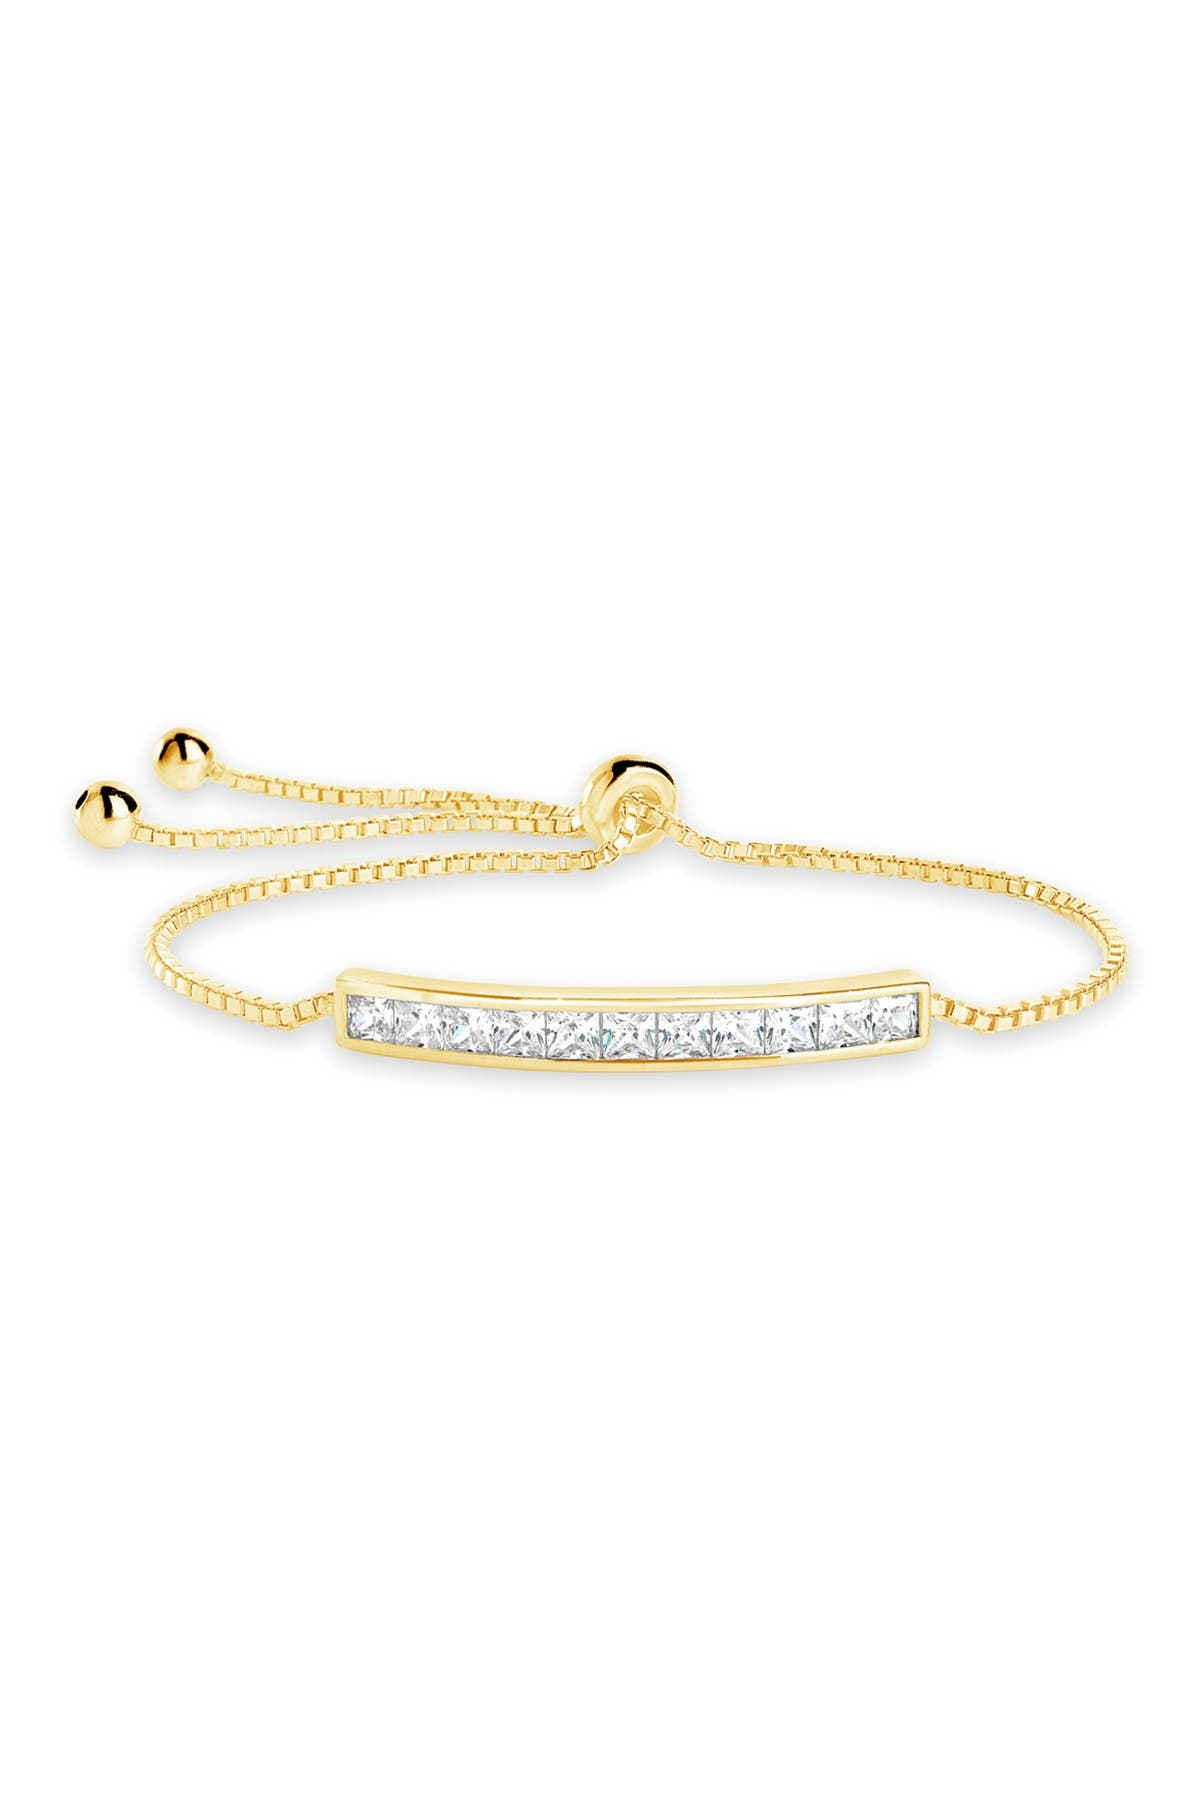 Image of Sterling Forever 14K Gold Plated Brass Inlaid CZ Bar Bolo Bracelet